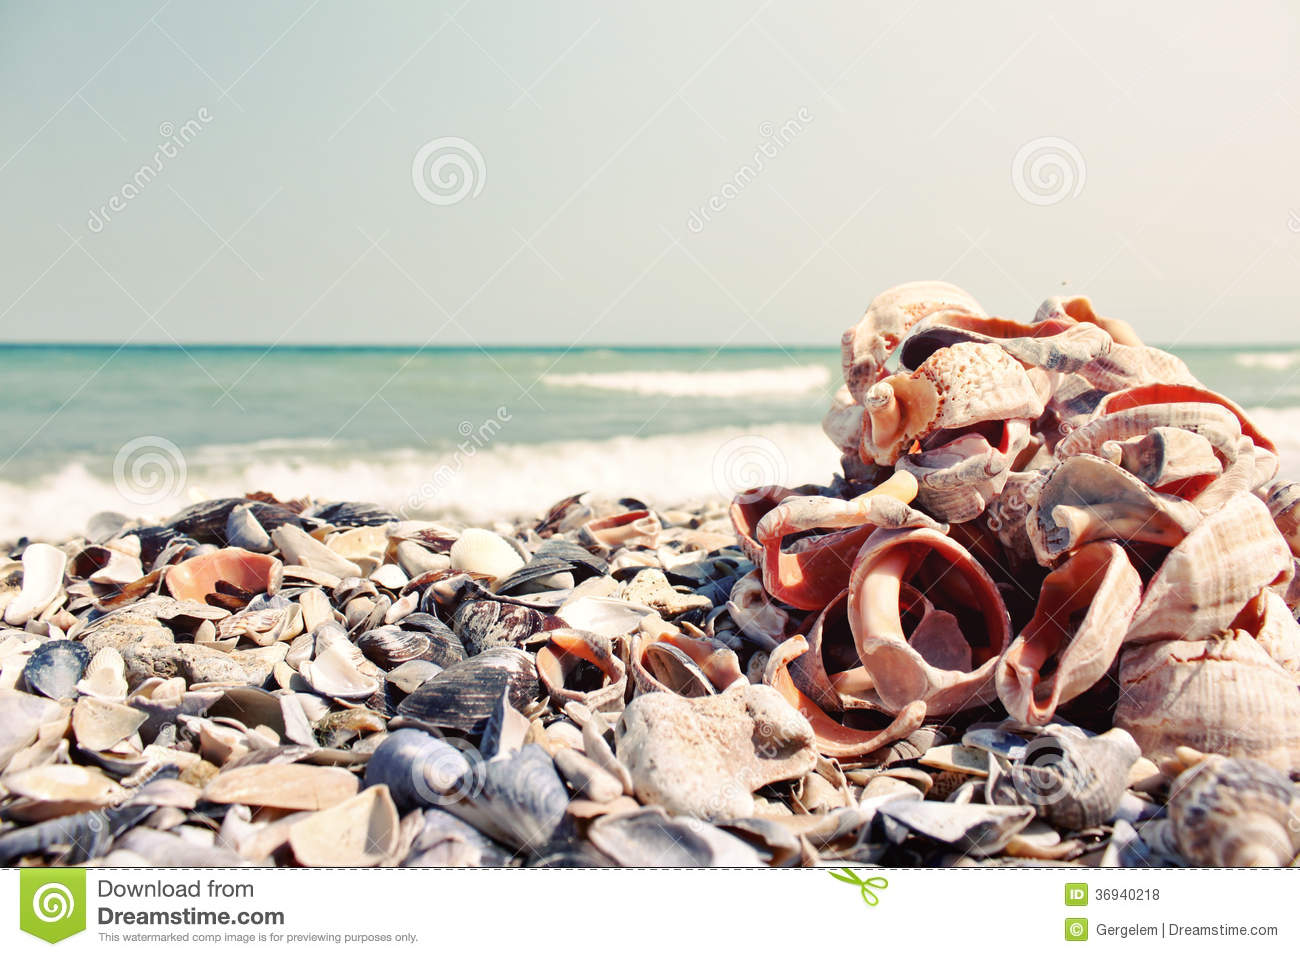 Locationphotos G1584828 W2 Mandarmoni west bengal as well Royalty Free Stock Photos Bunch Different Sea Shells Calm Sight Lots Empty Beach Image36940218 besides 5954277822 furthermore Sana furthermore Malibu Summer. on 5